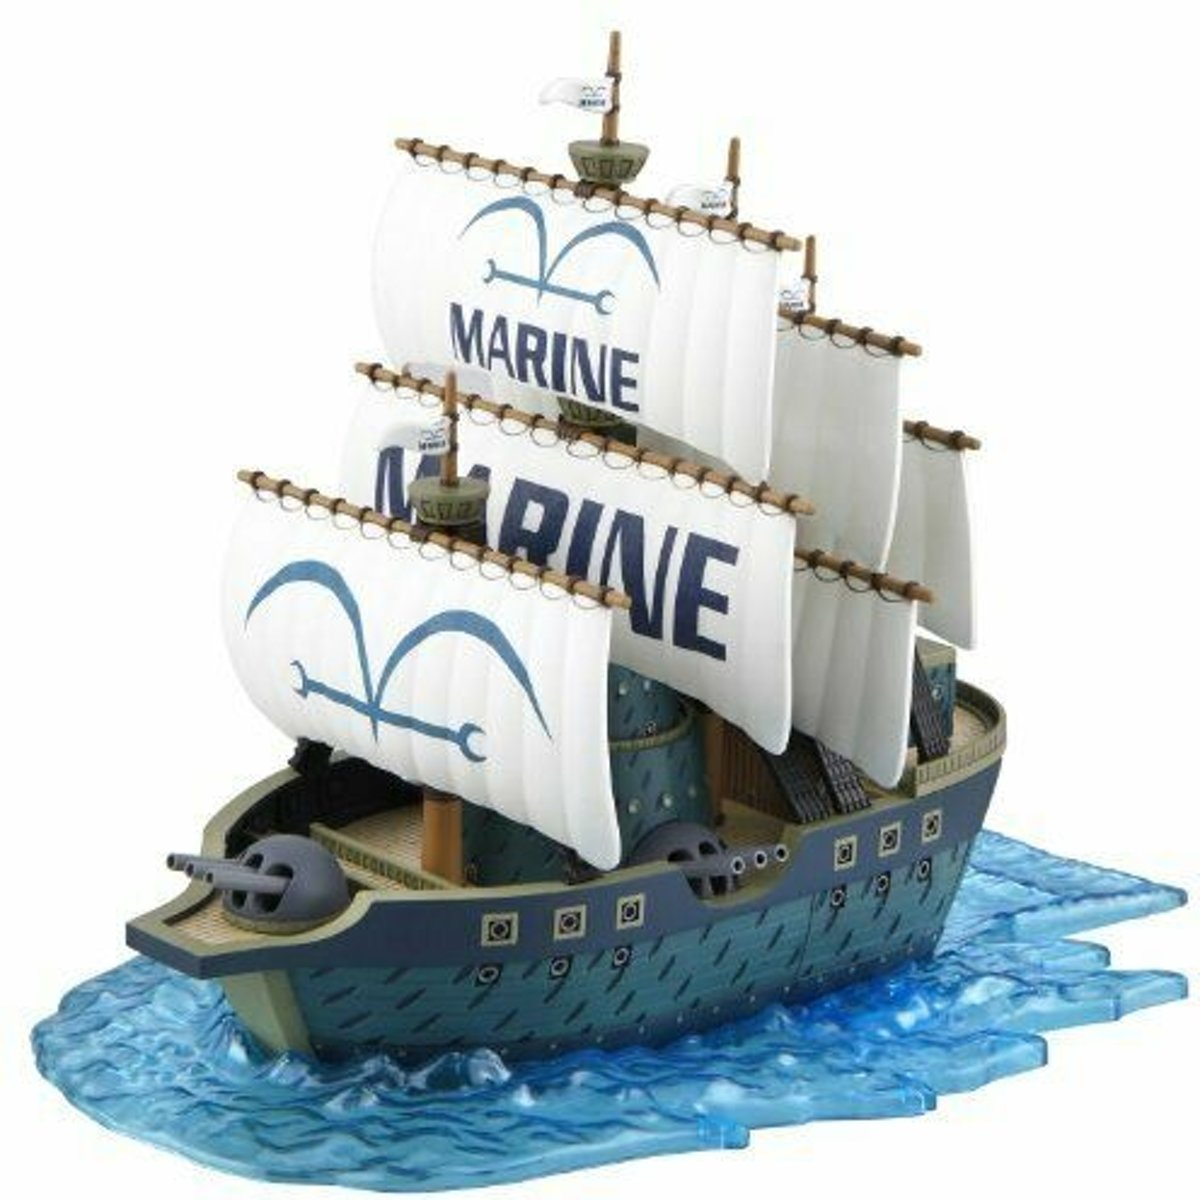 Bandai Grand Ship Collection Modelbouw Marine Warrior 15 Cm